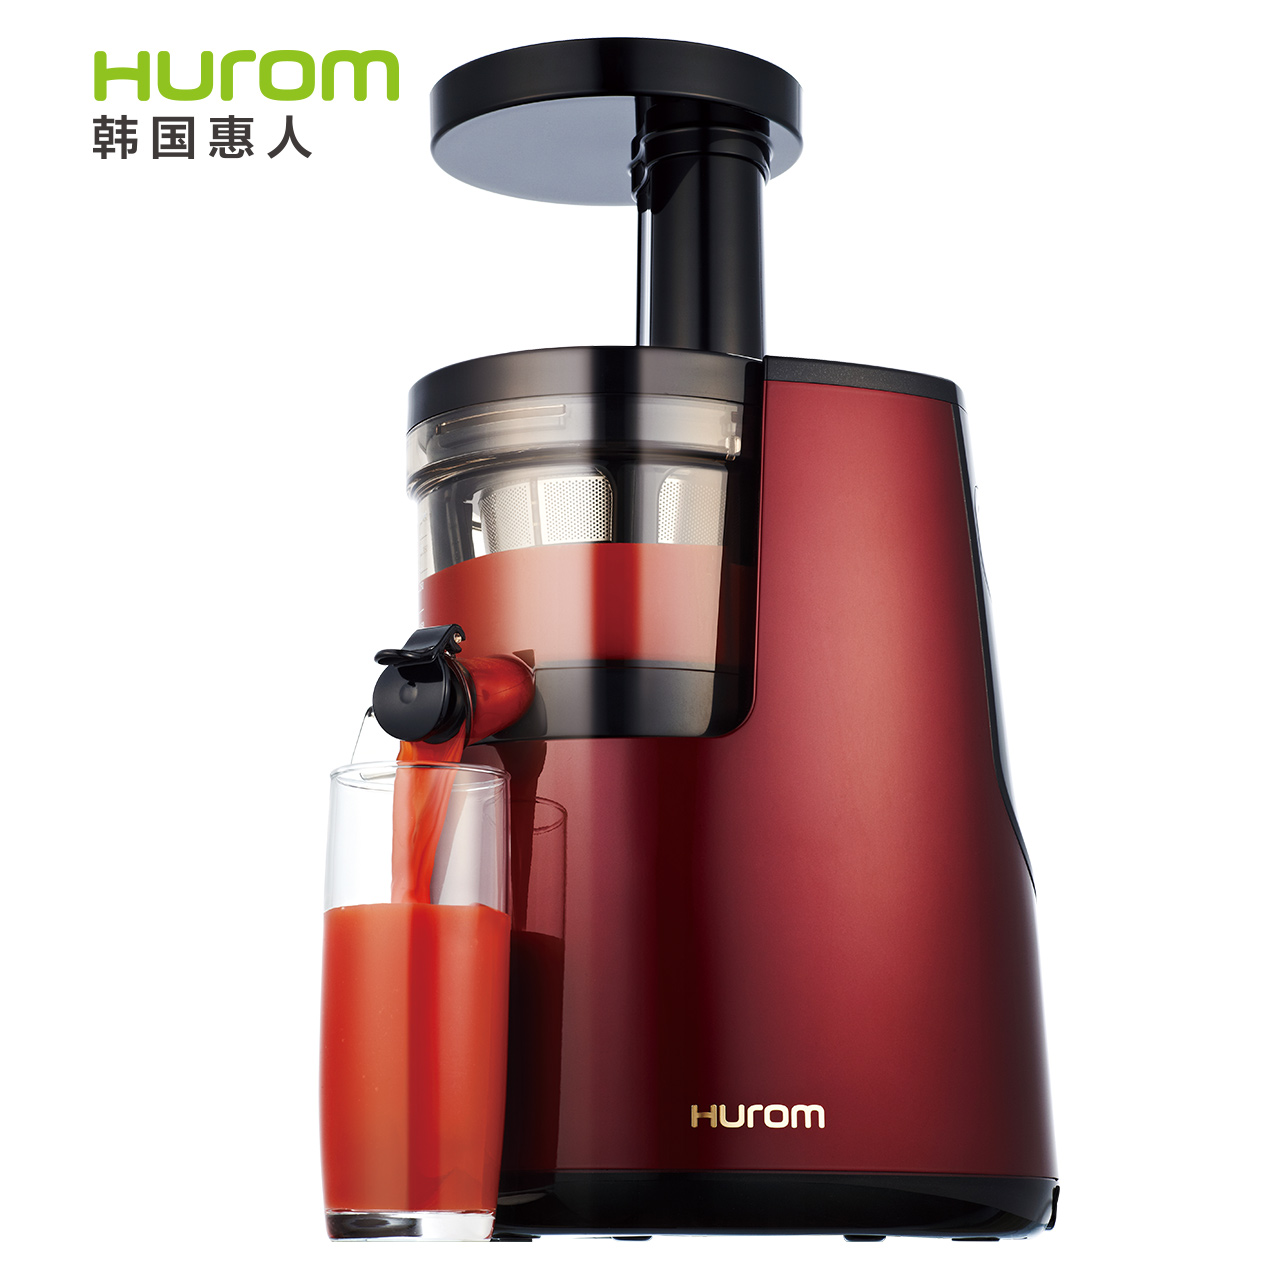 Hurom Slow Juicer Hu 600wn : Hurom/ Hui juice machine HU-600WN household Juicer juice machine imported goods - RoundTheClockMall